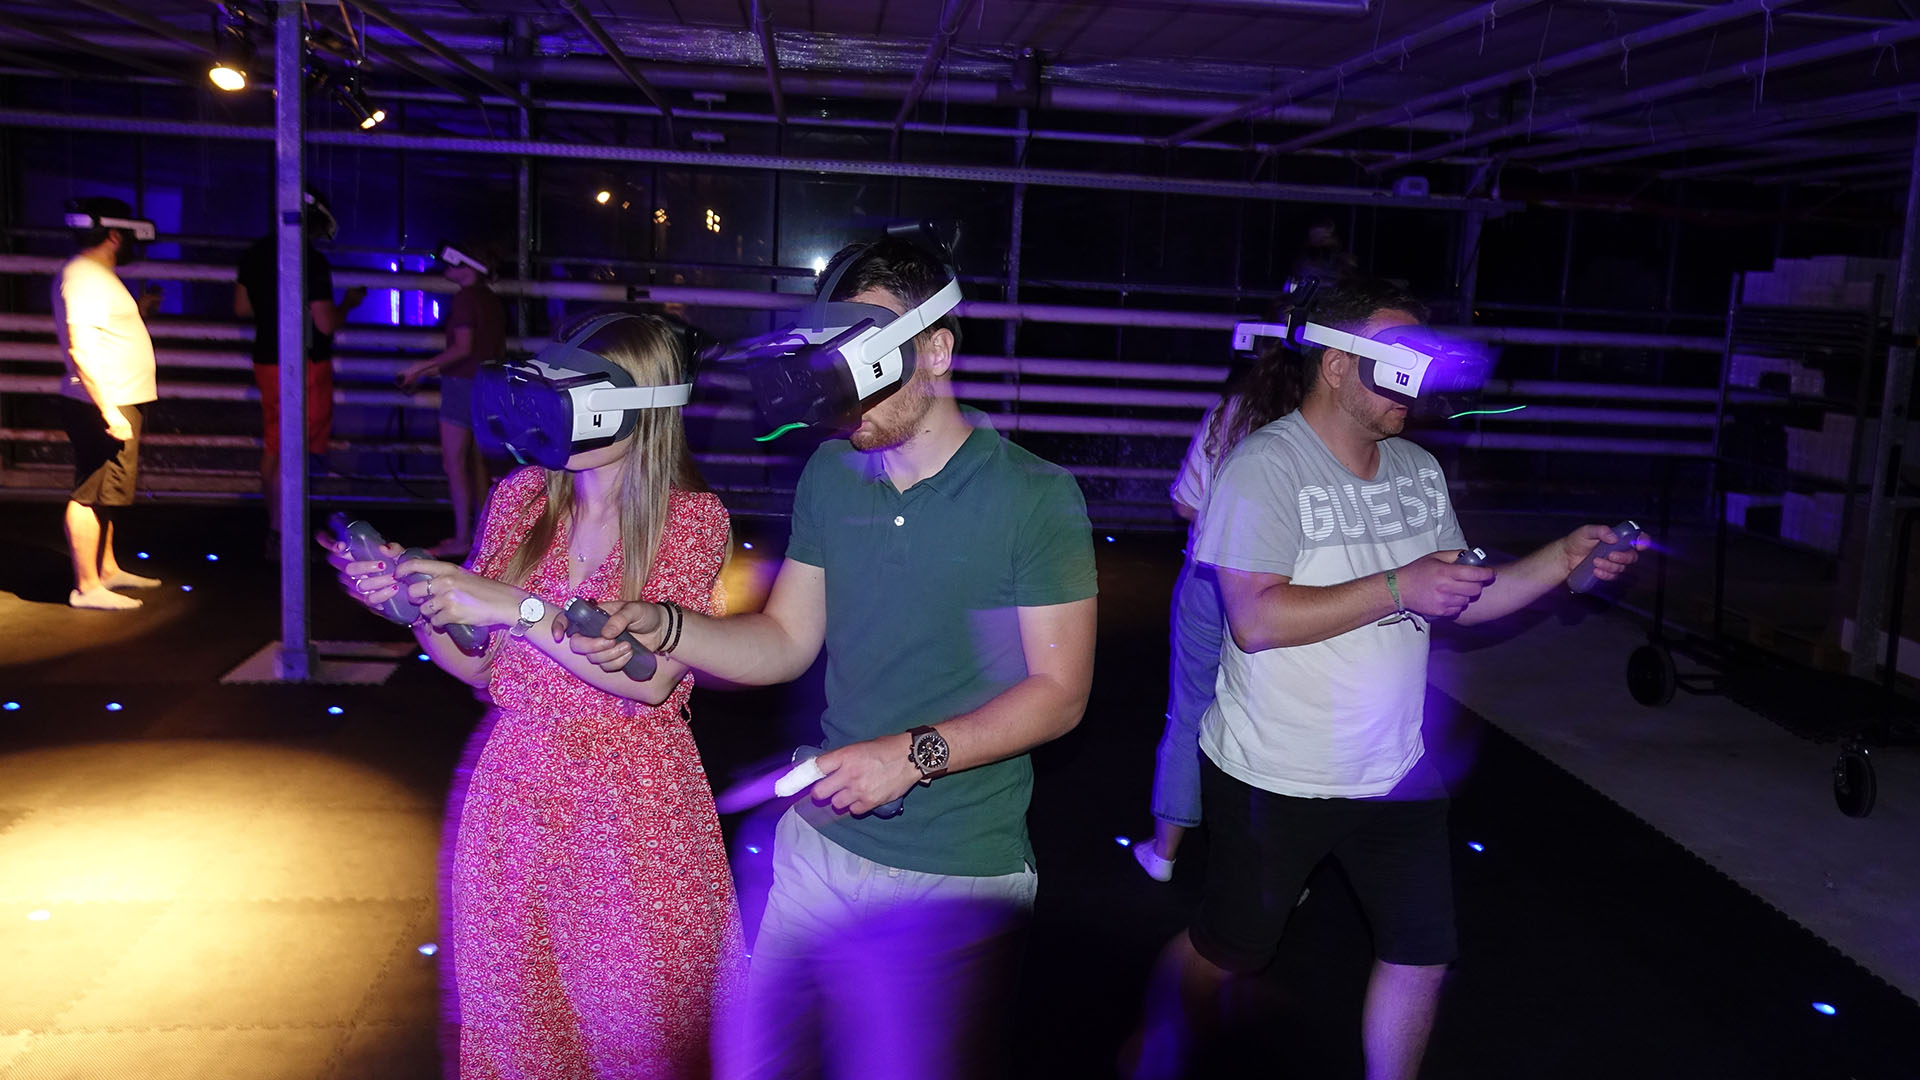 Get the best experience on the move with the VEX Arena Mobile attraction